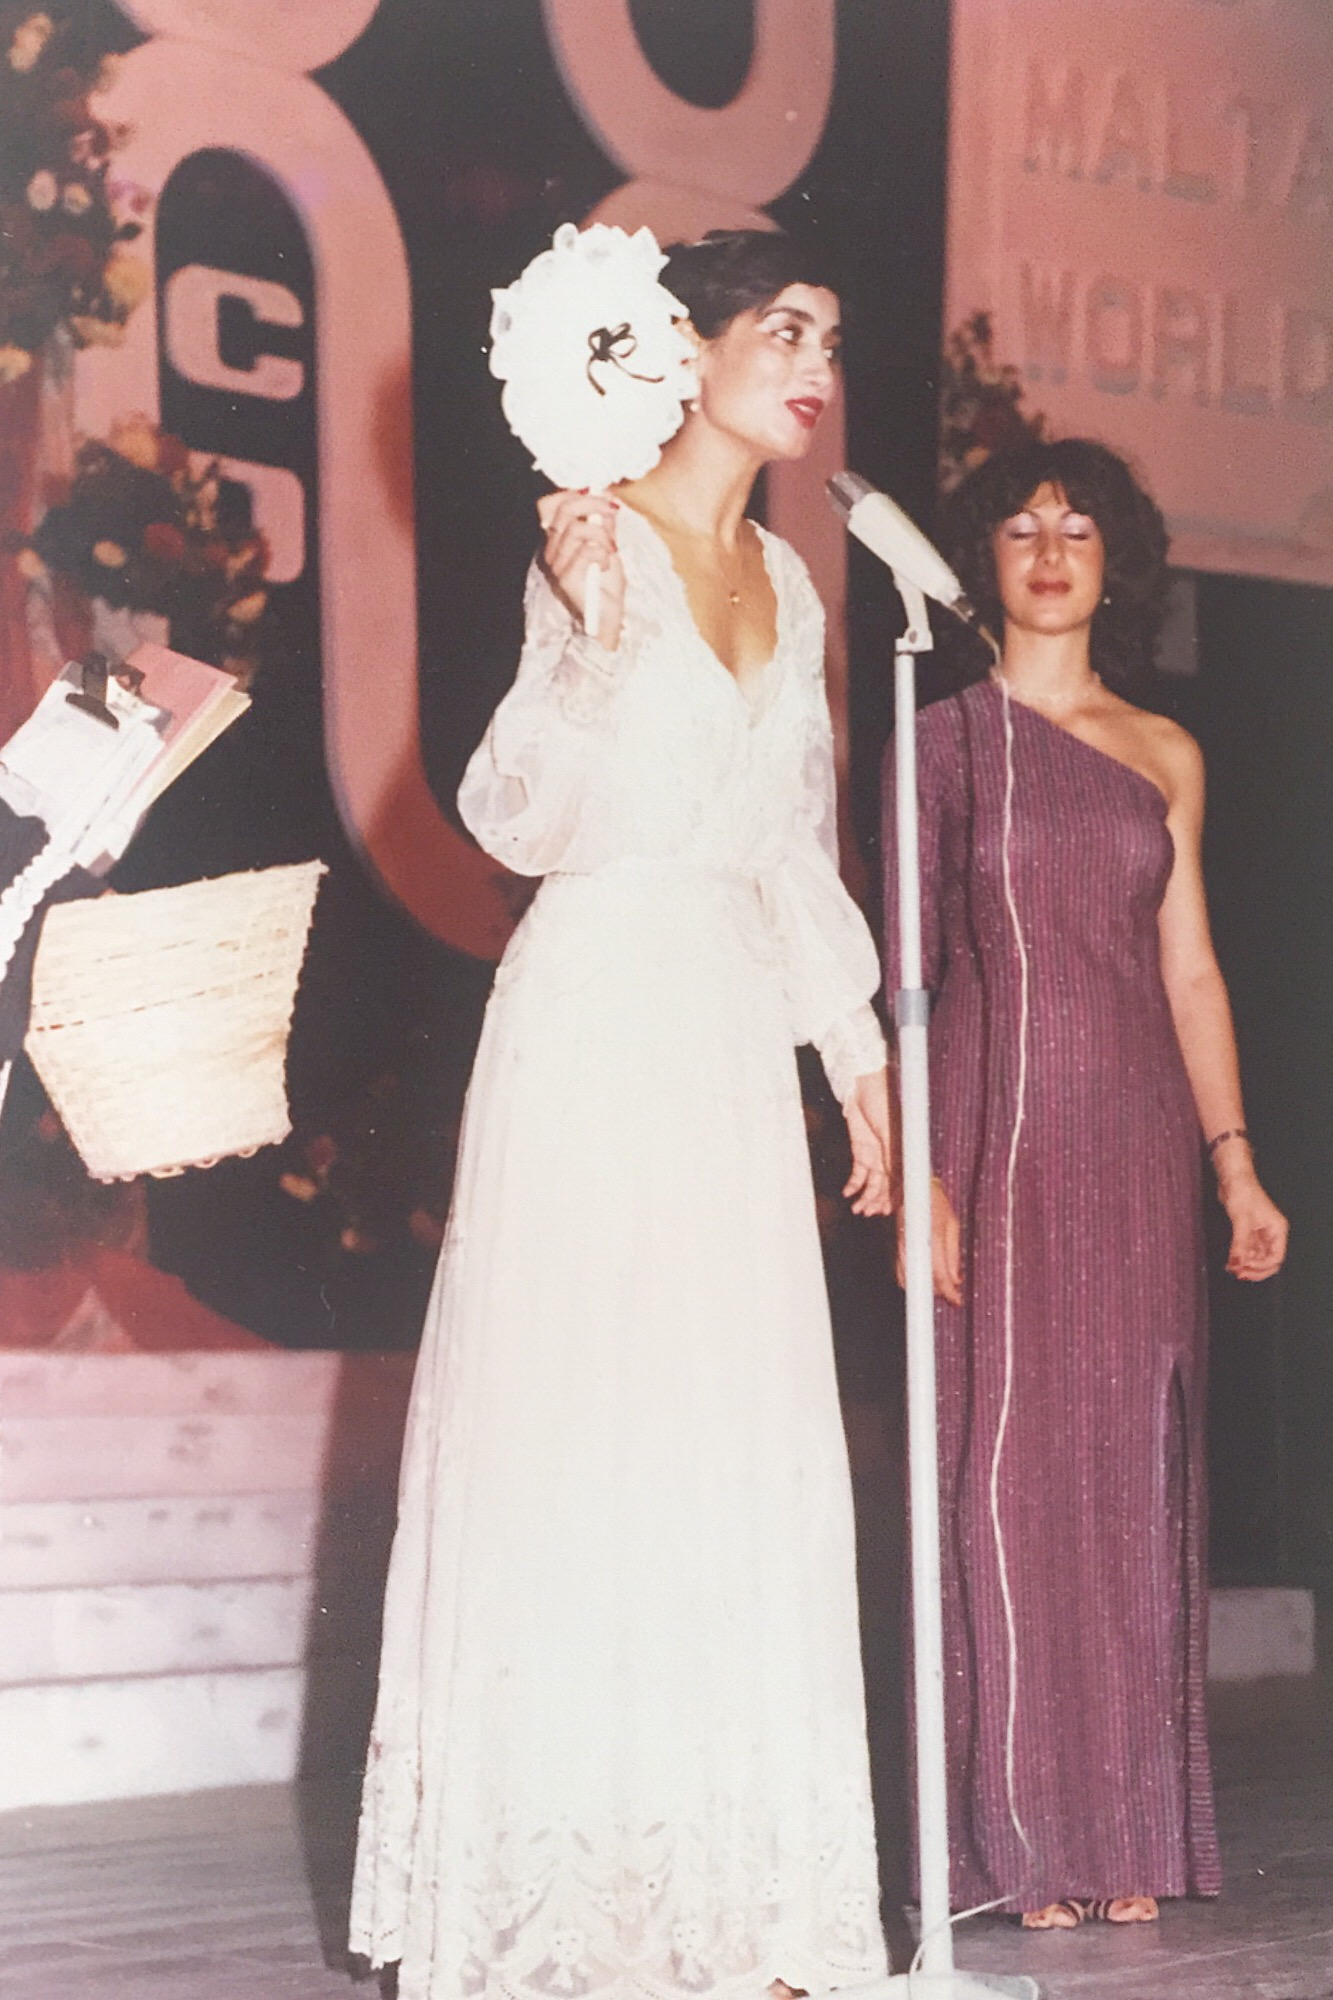 35. Miss Fgura in Miss Malta Contest 1980